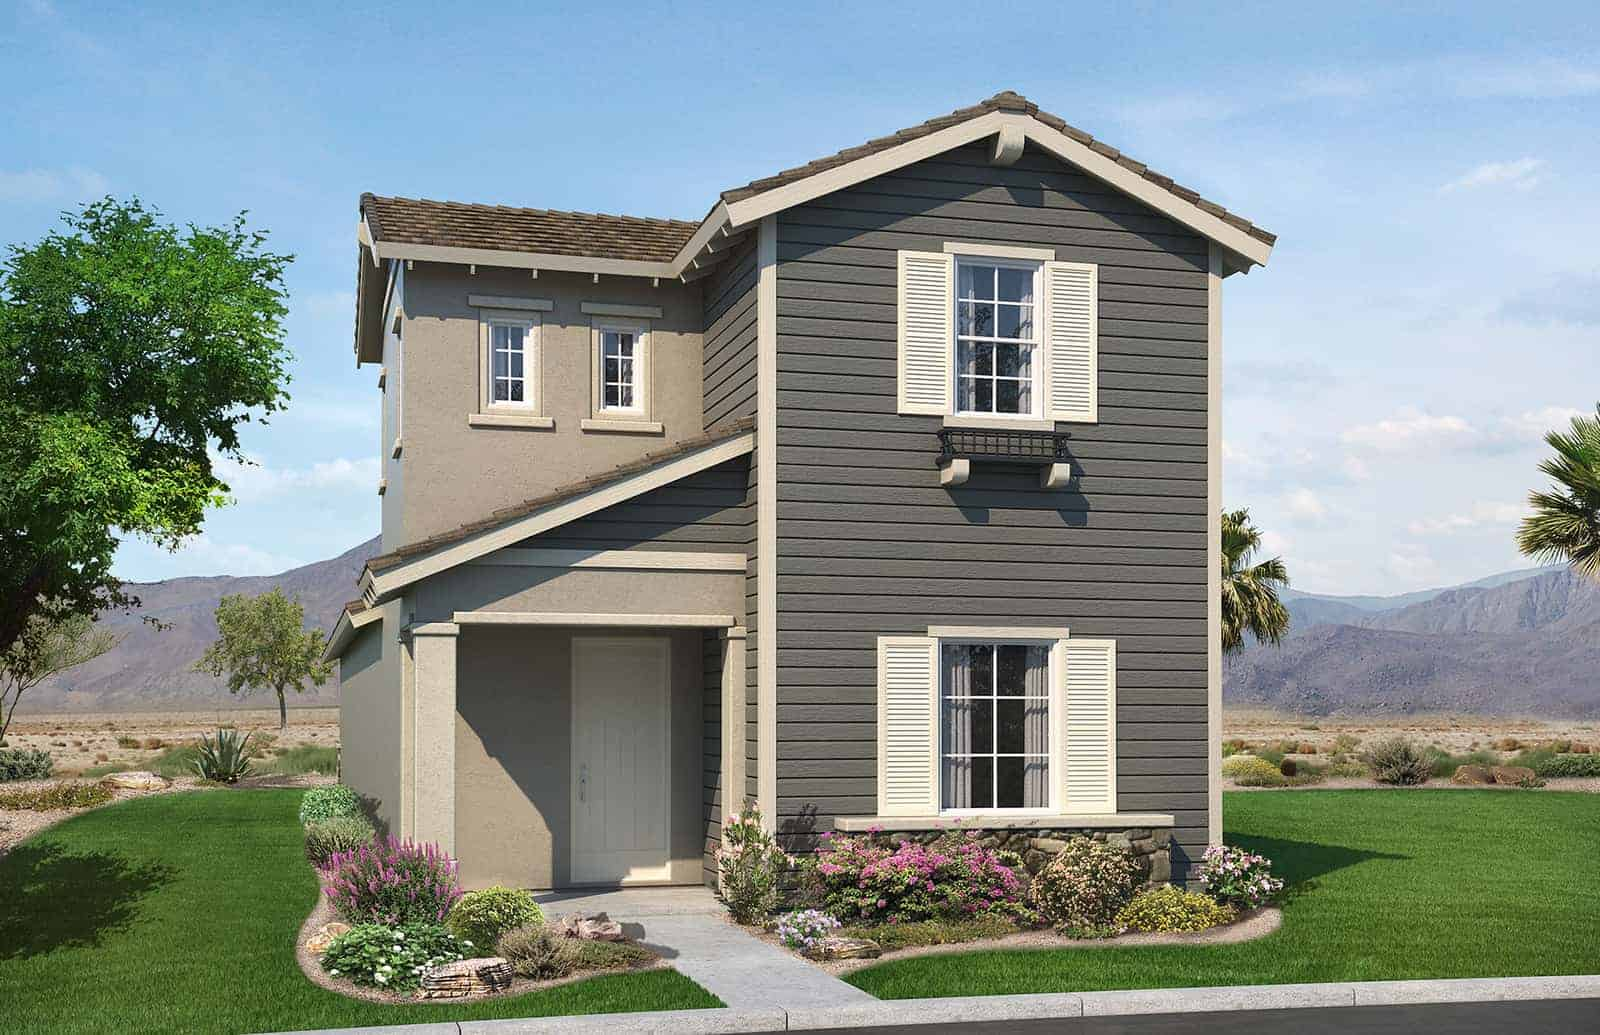 Cottages at Verrado | Residence 2 | Plan B